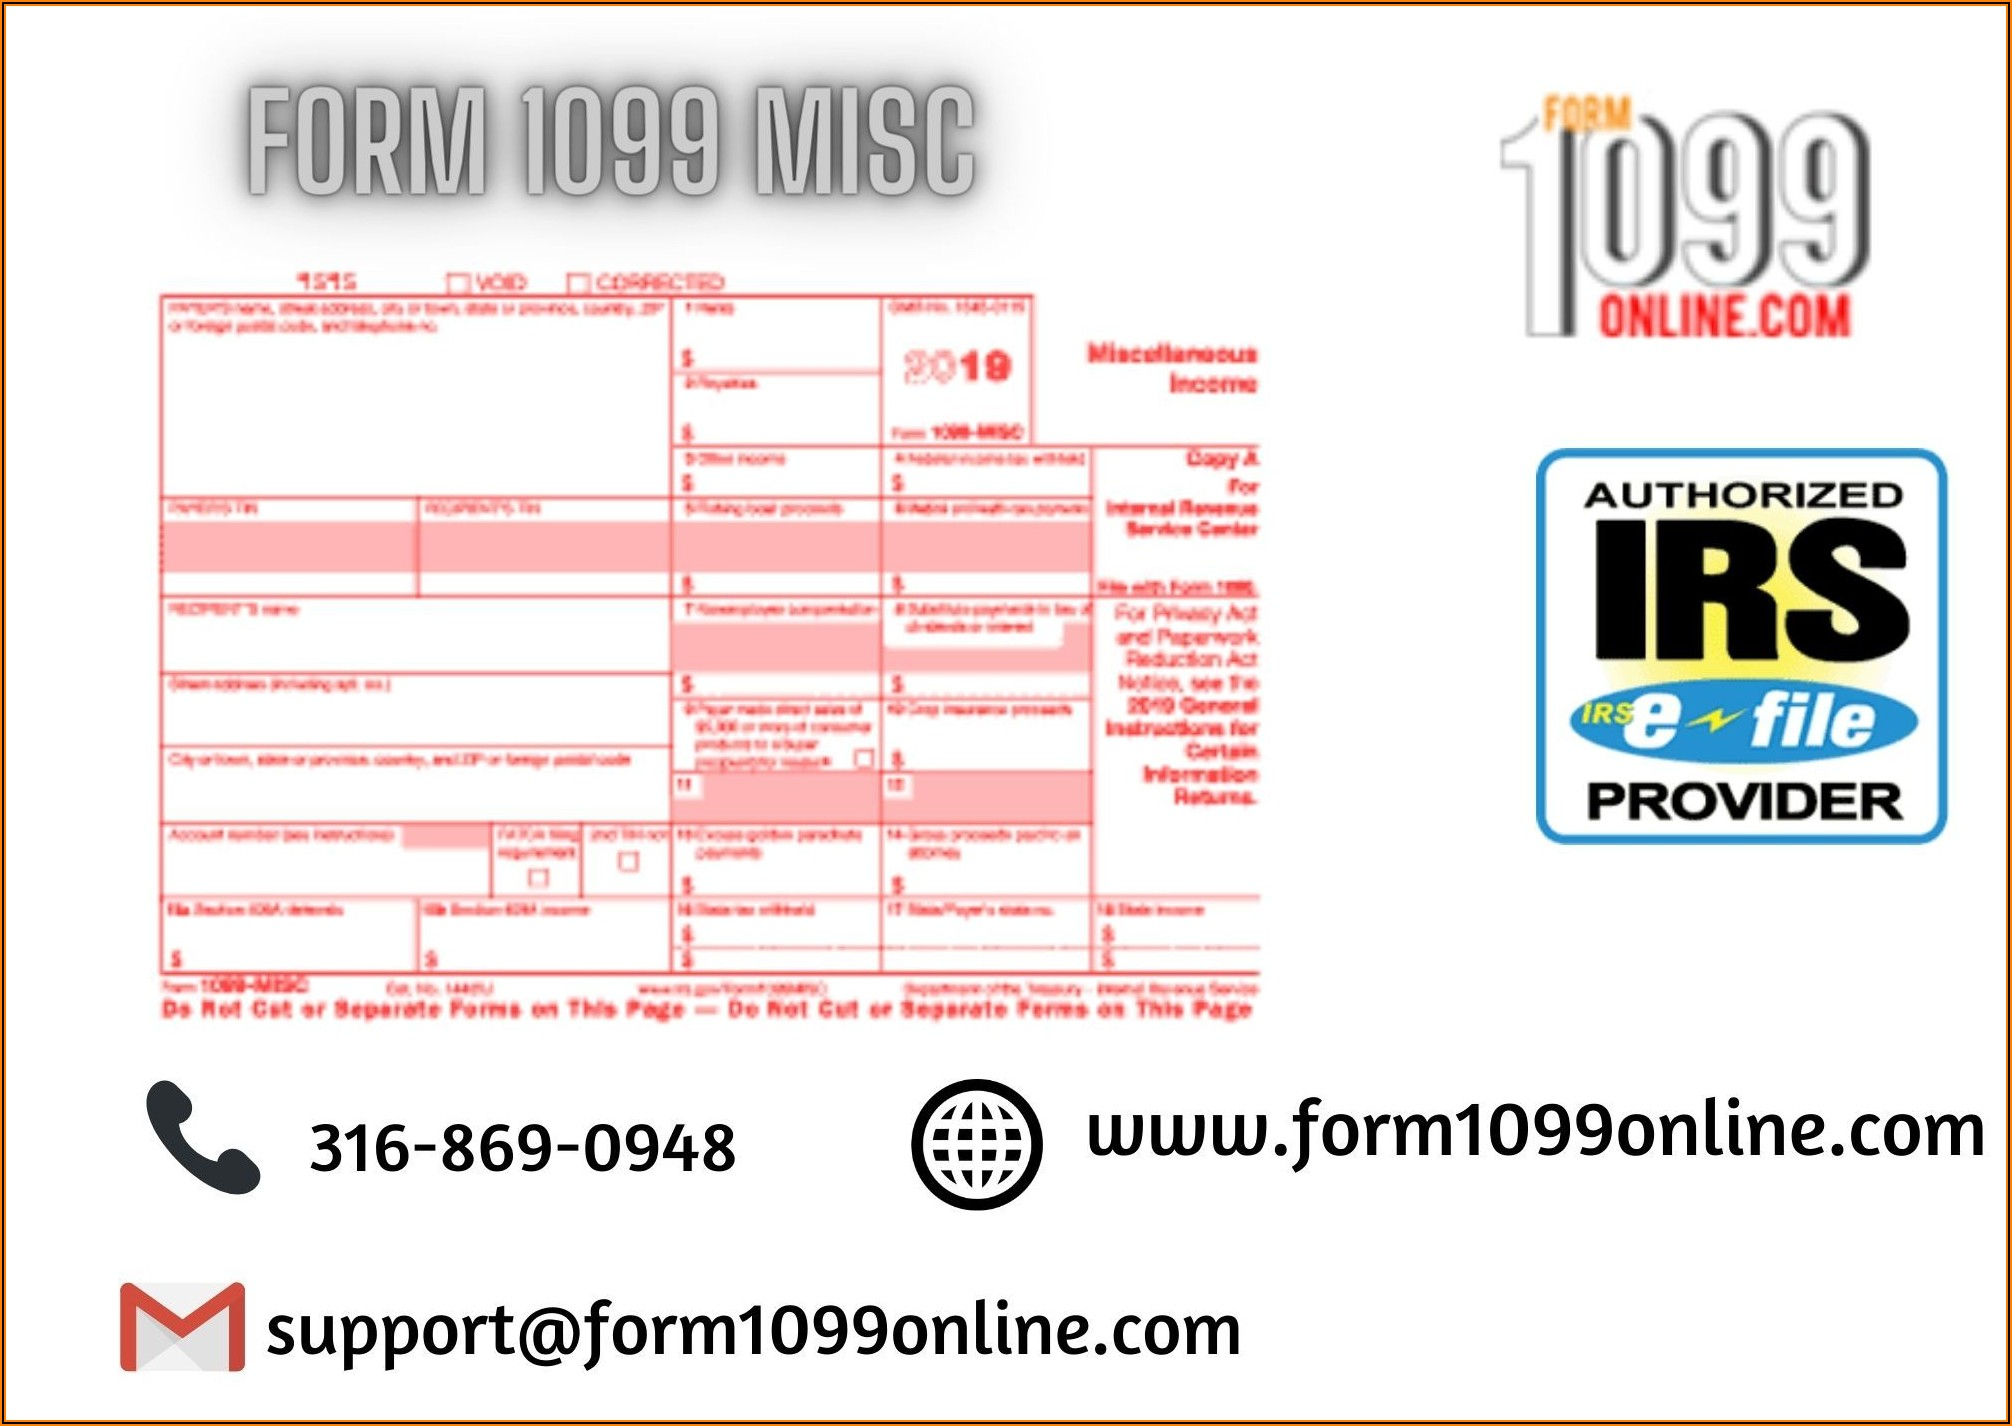 Free Form 1099 Misc